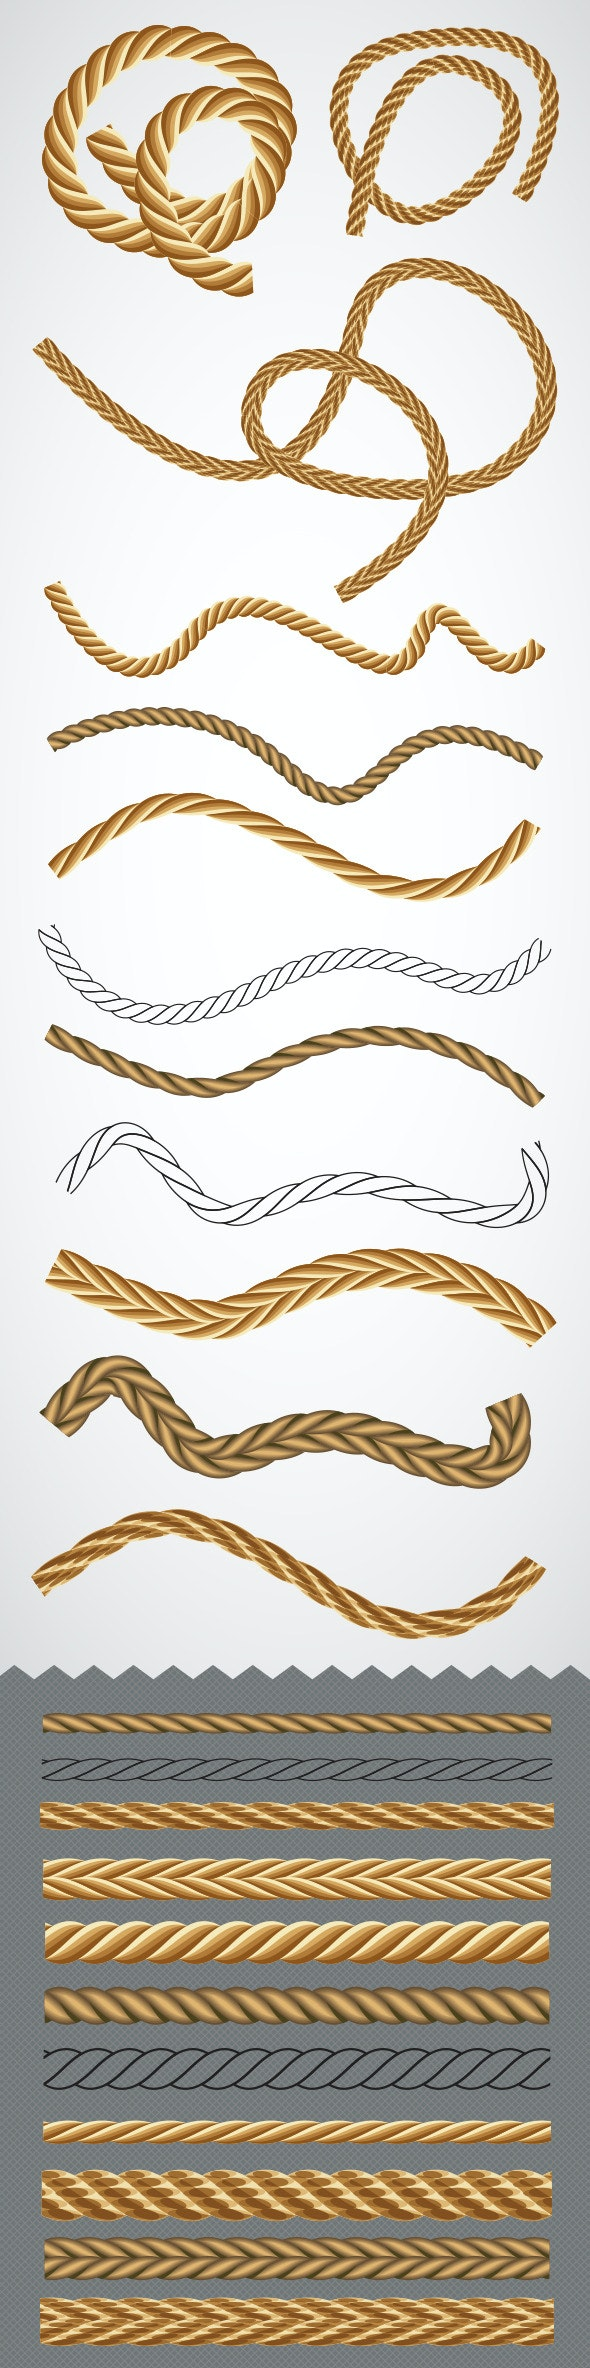 Vector Rope Graphic Styles - Texture Brushes